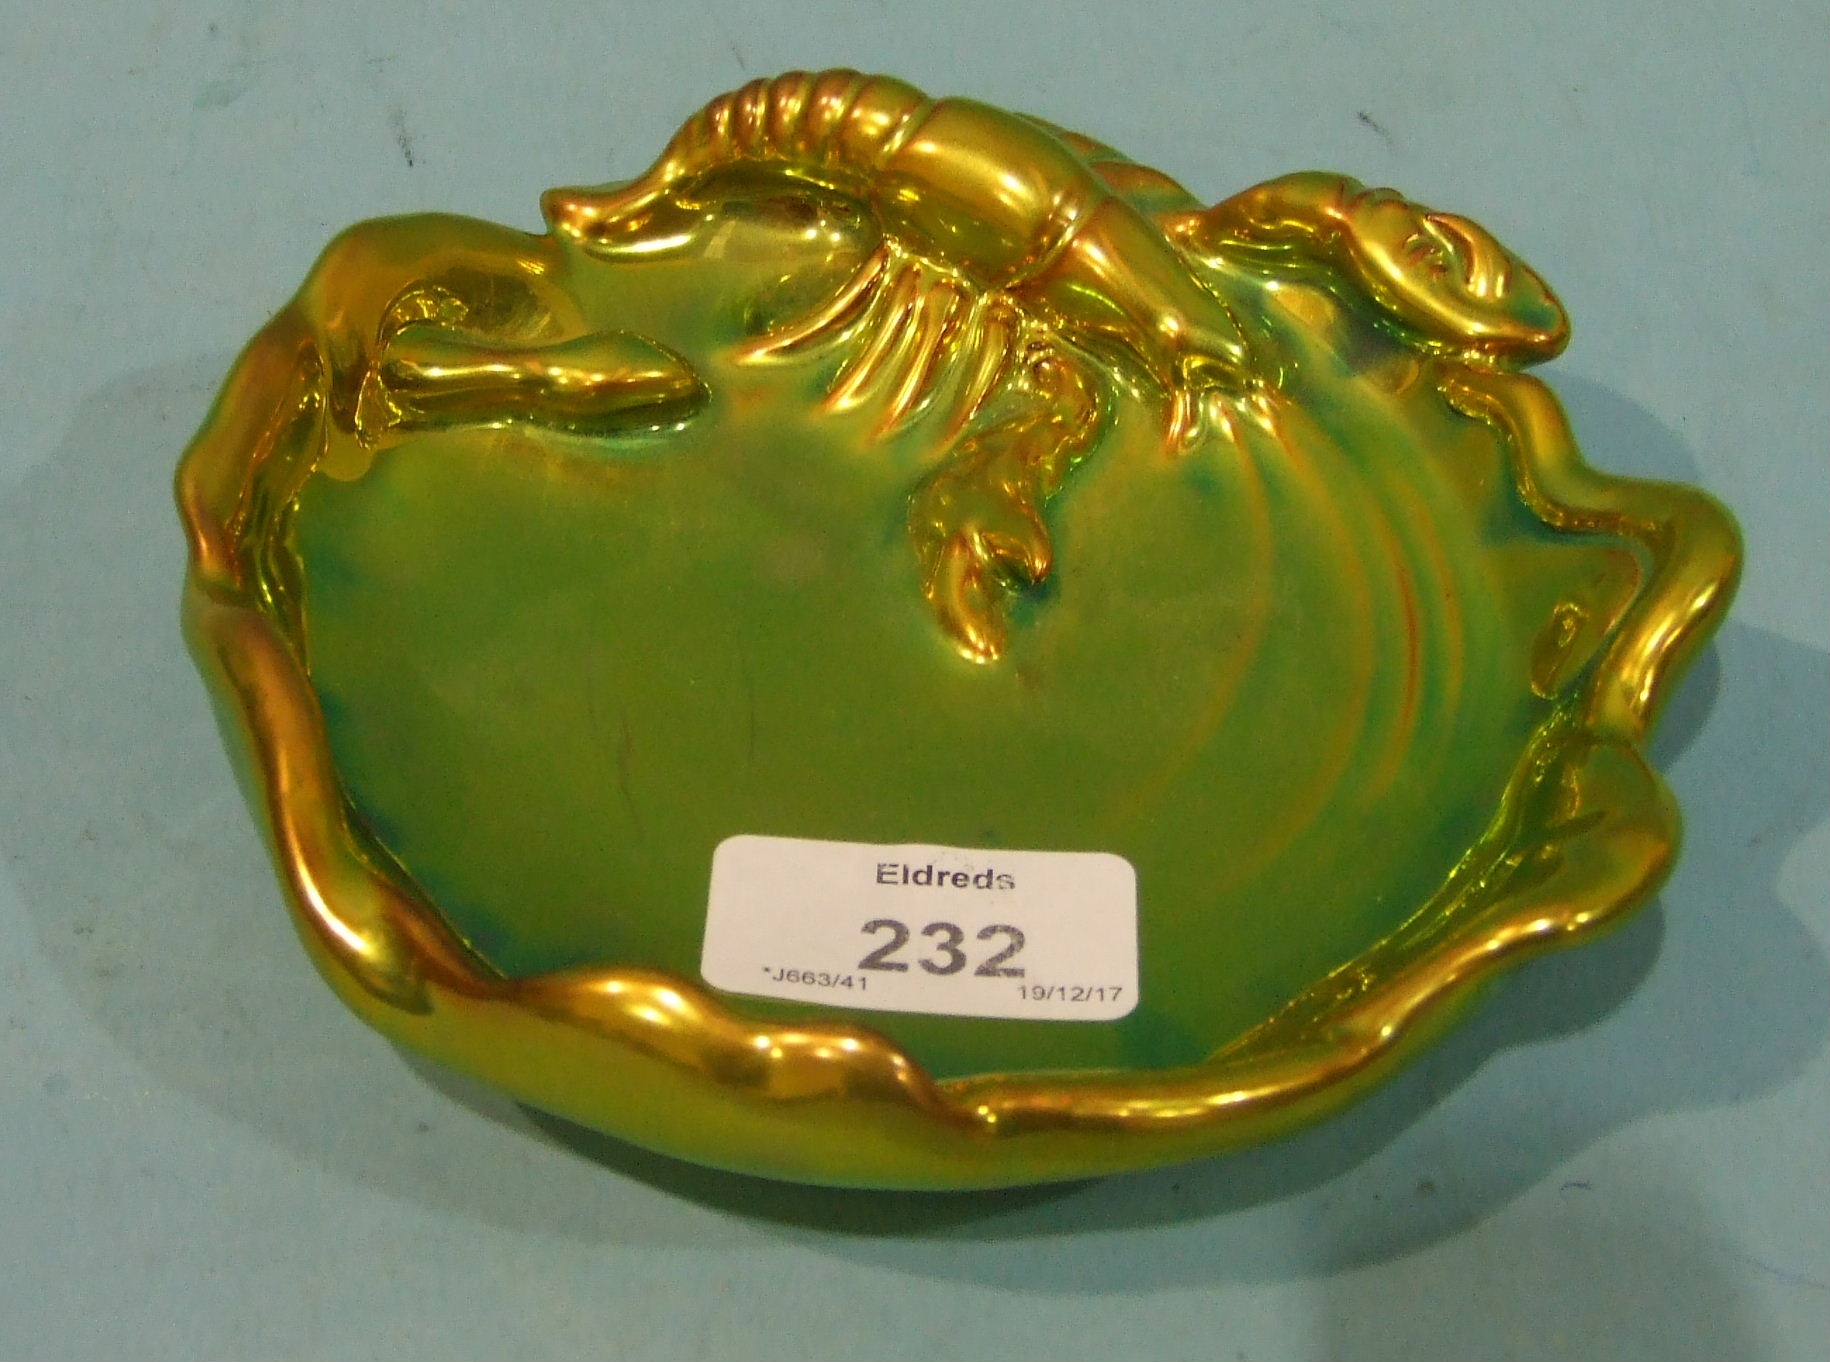 Lot 232 - A Zsolnay Pecs green lustre dish relief-moulded with a lobster in a rock pool, 14cm diameter,